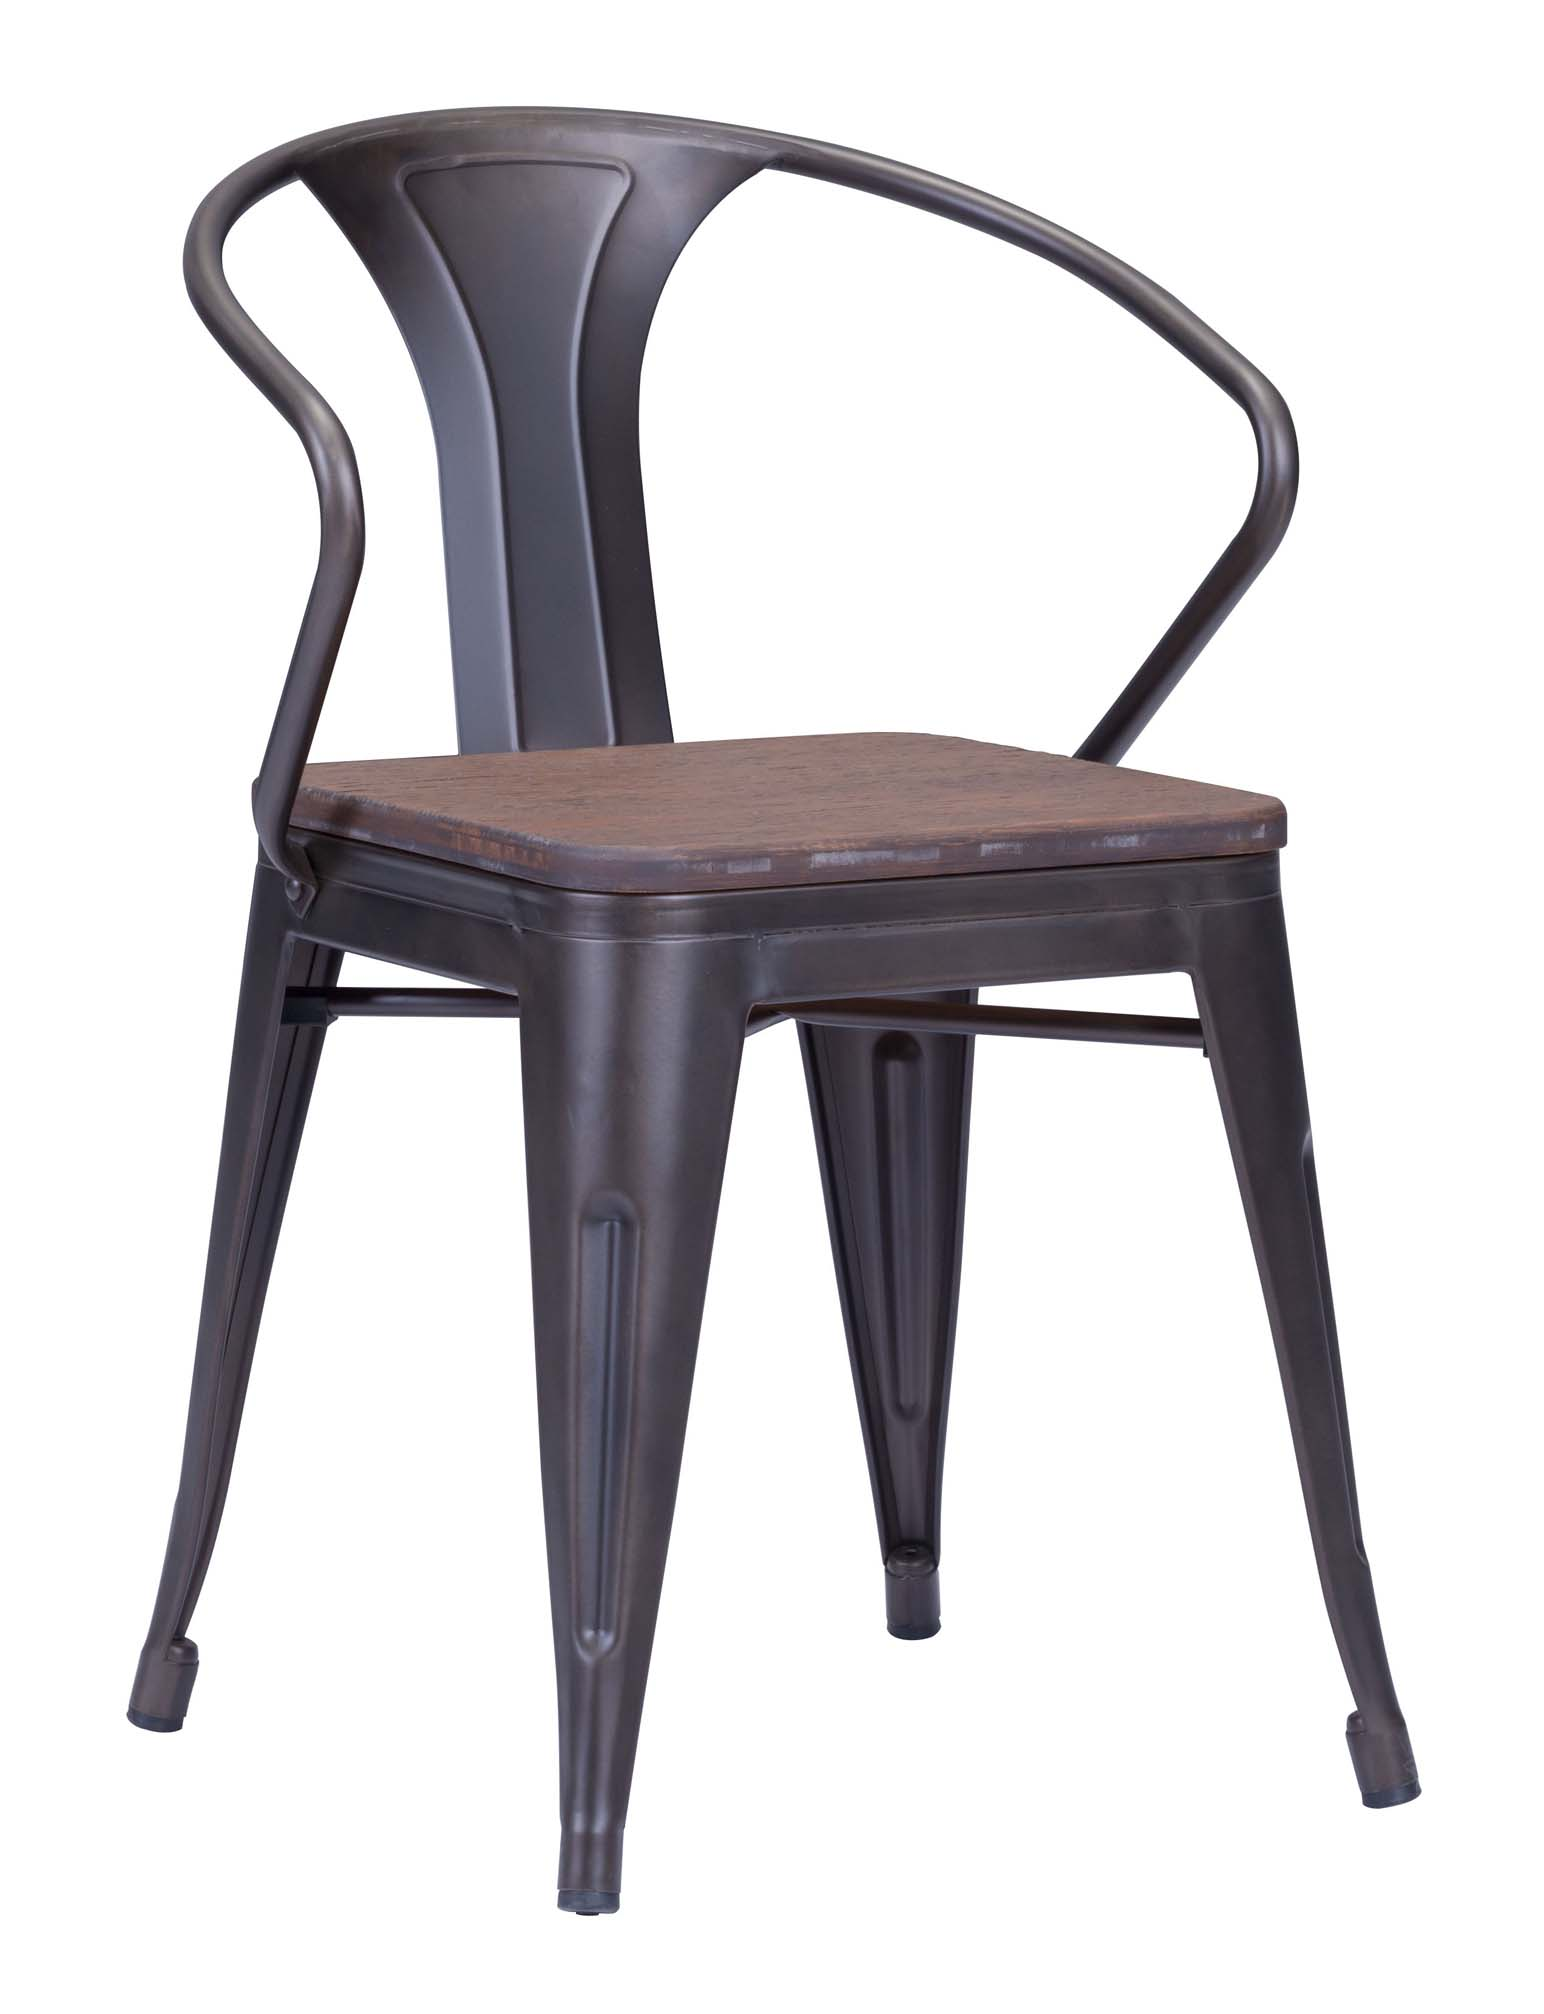 helix-dining-chair-rustic-wood.jpg